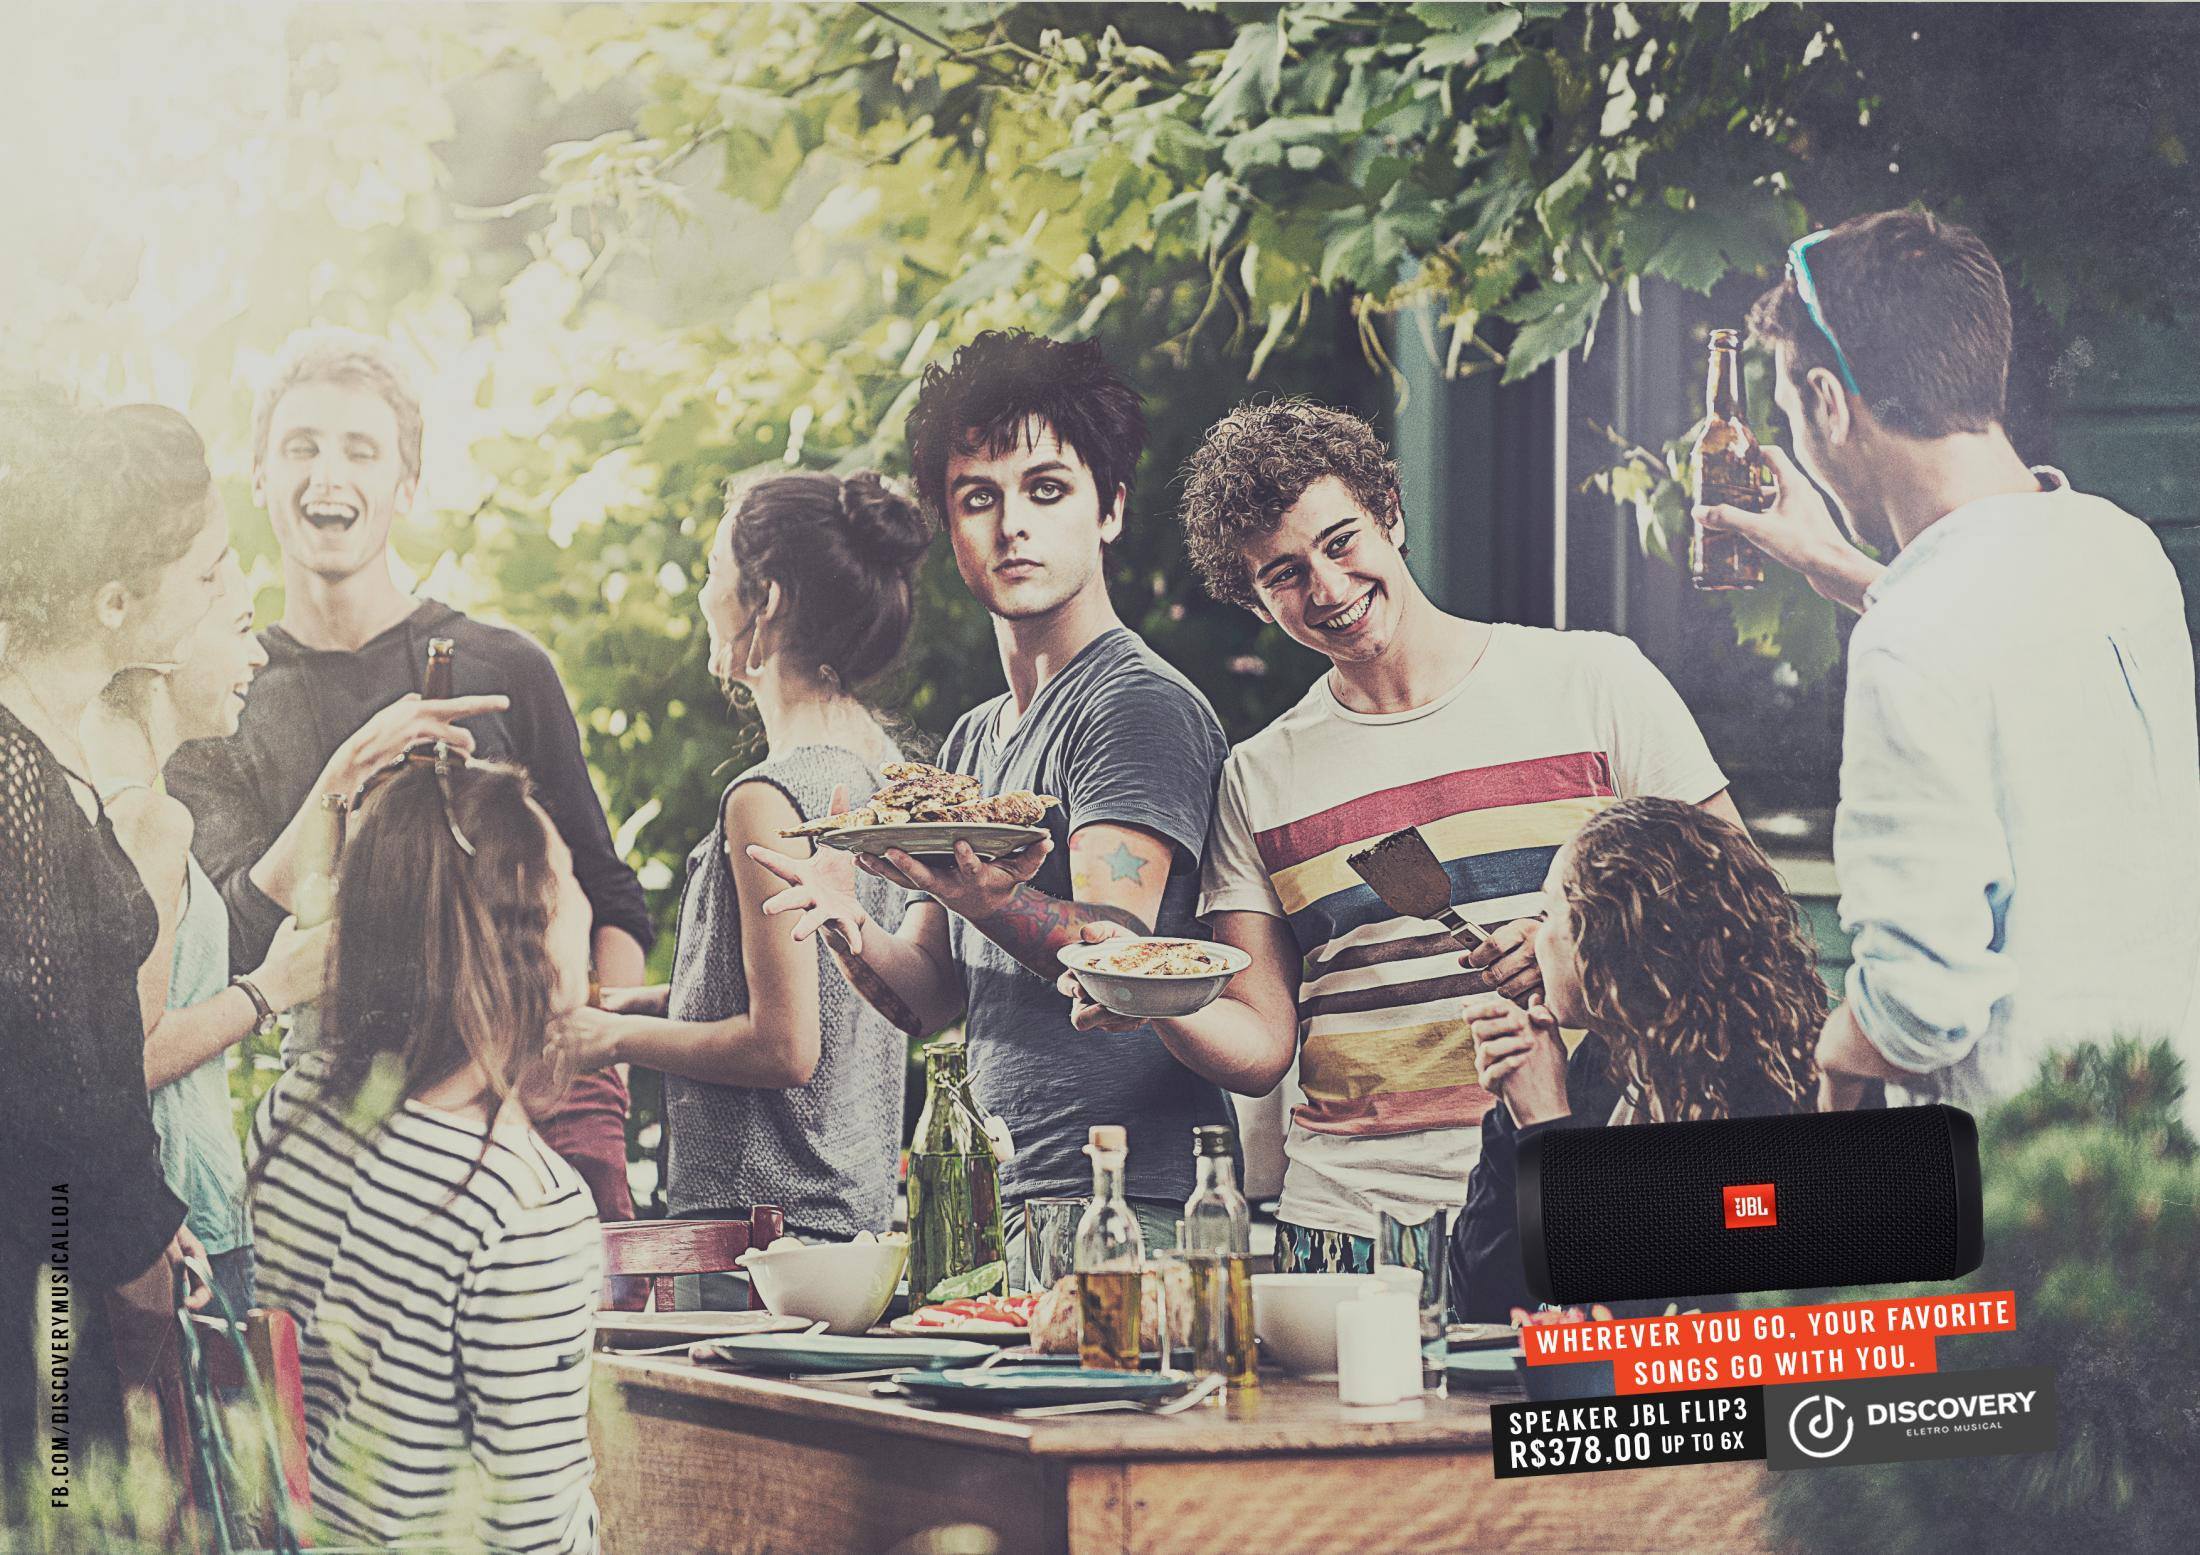 Discovery Electro Musical Print Ad - Wherever you go, Your favorite songs go with you, 1